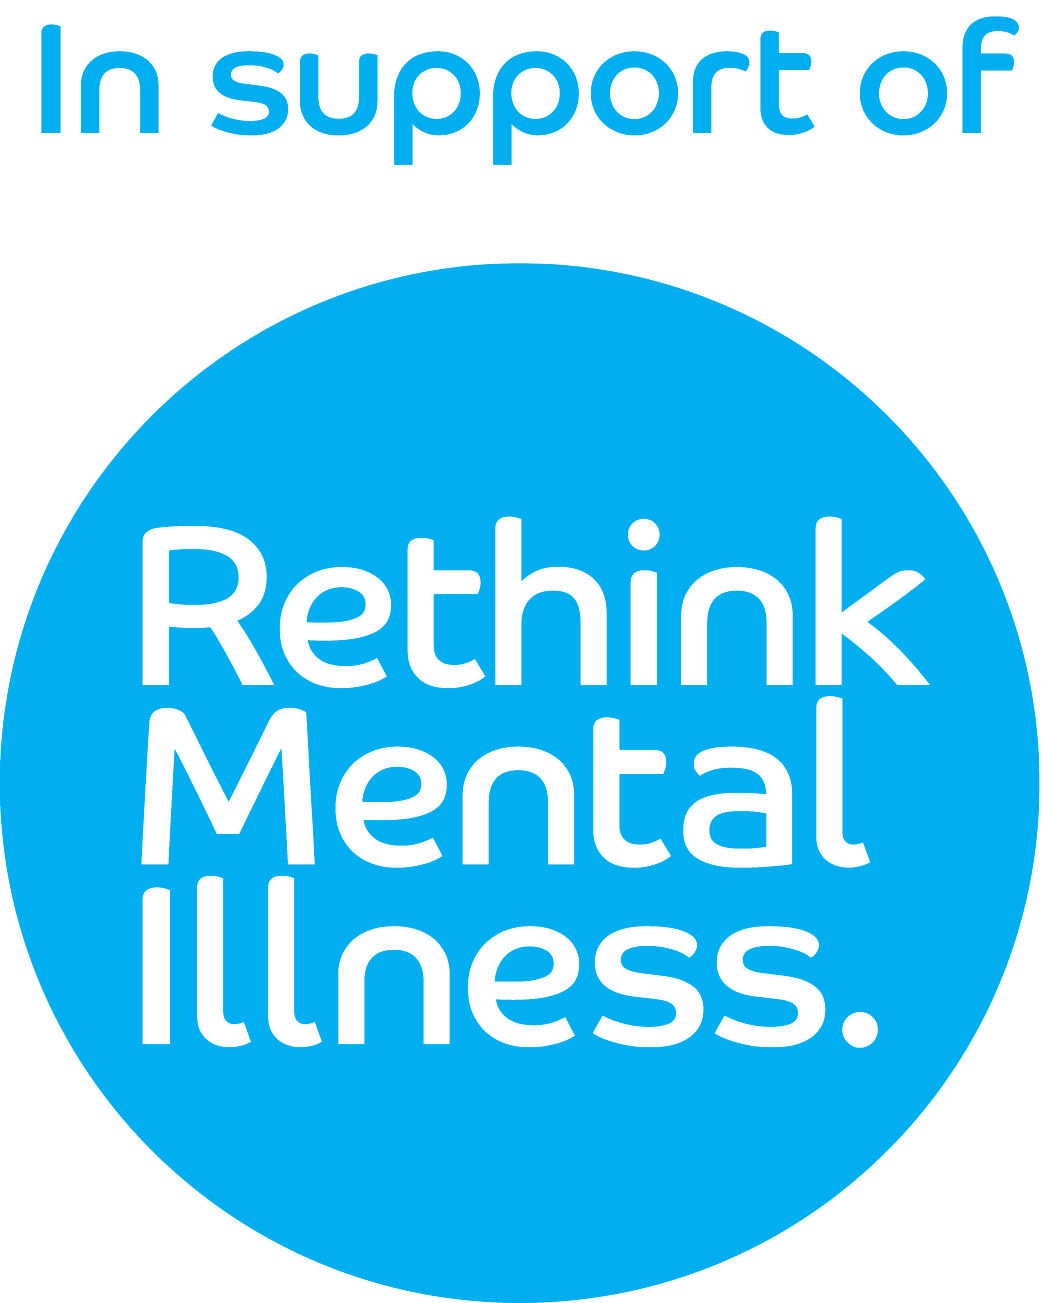 In support of Rethink Mental Illness logo